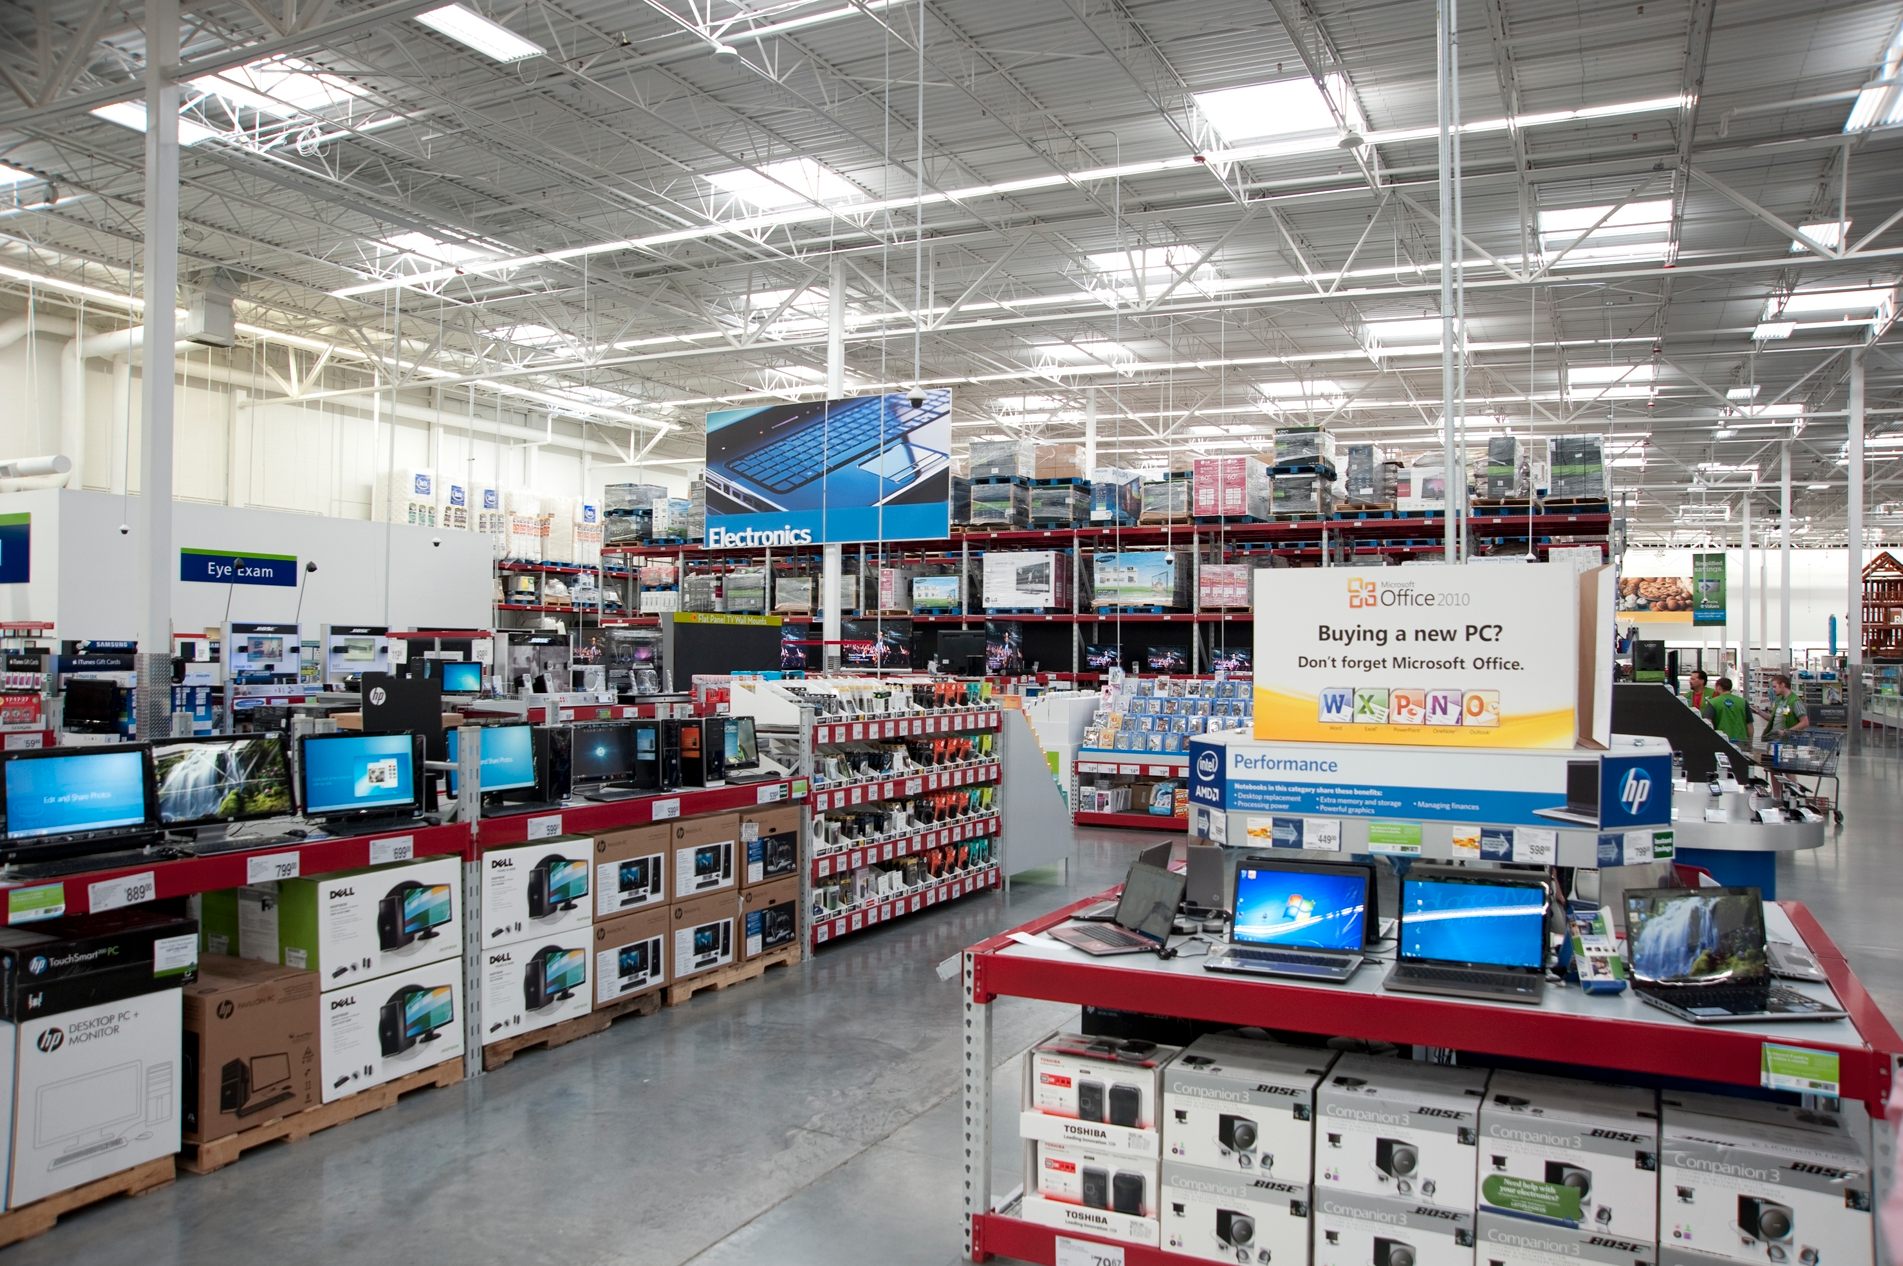 The electronics department at Sam's Club, soon to get more Apple gear?